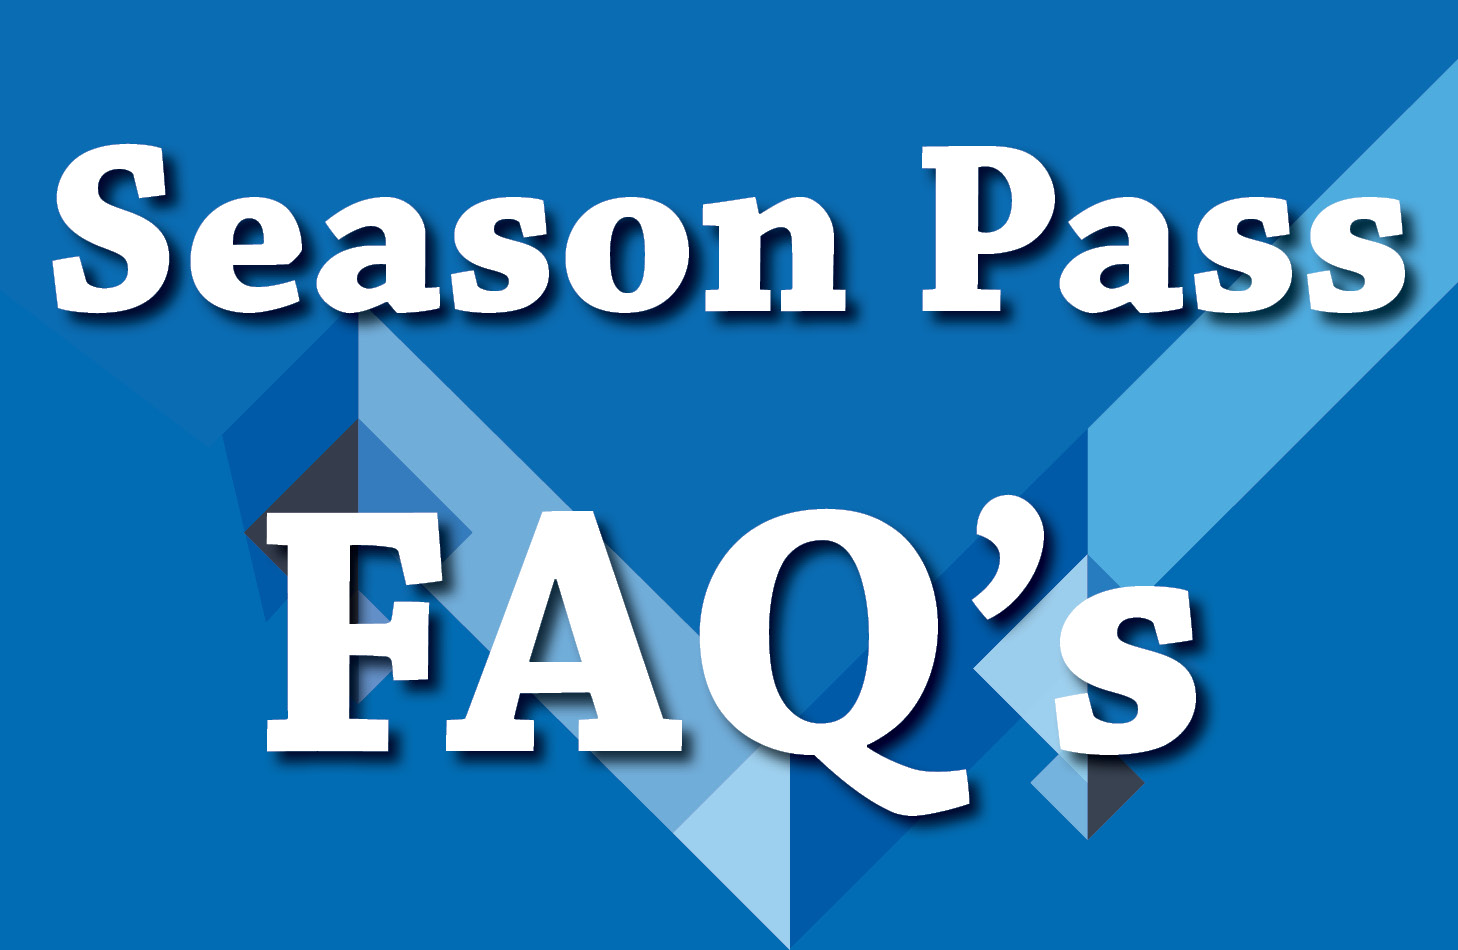 Season Pass Frequently Asked Questions